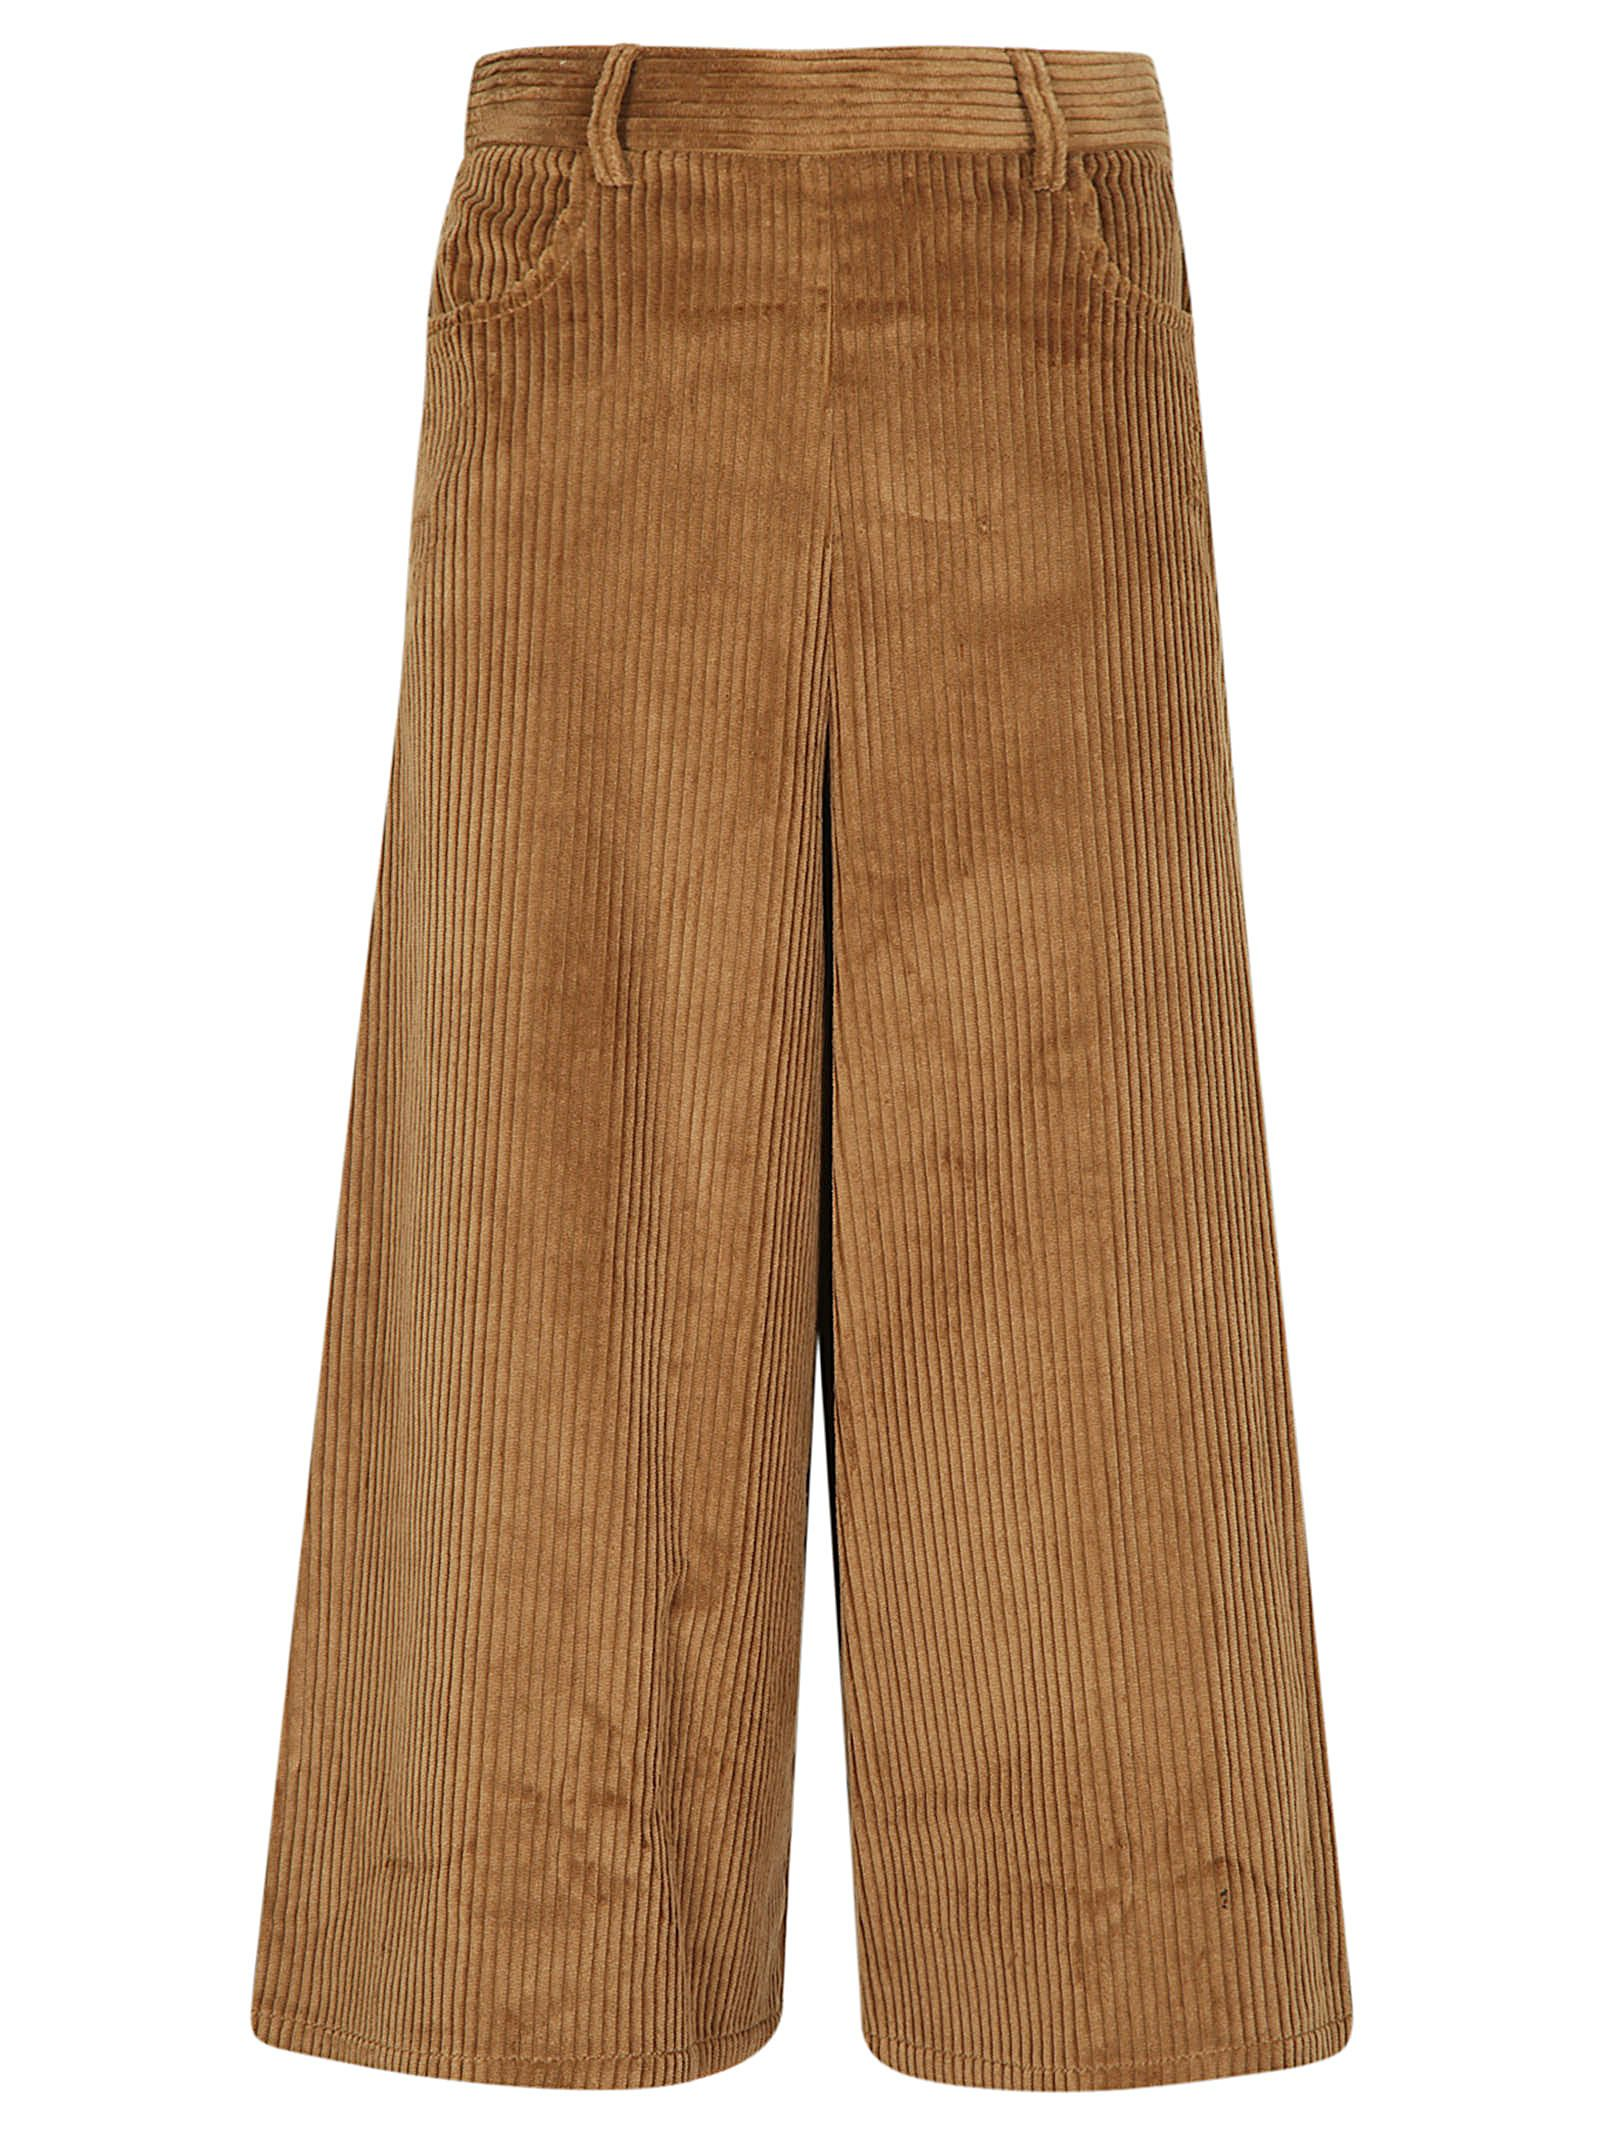 see by chloé -  Wide-leg Trousers